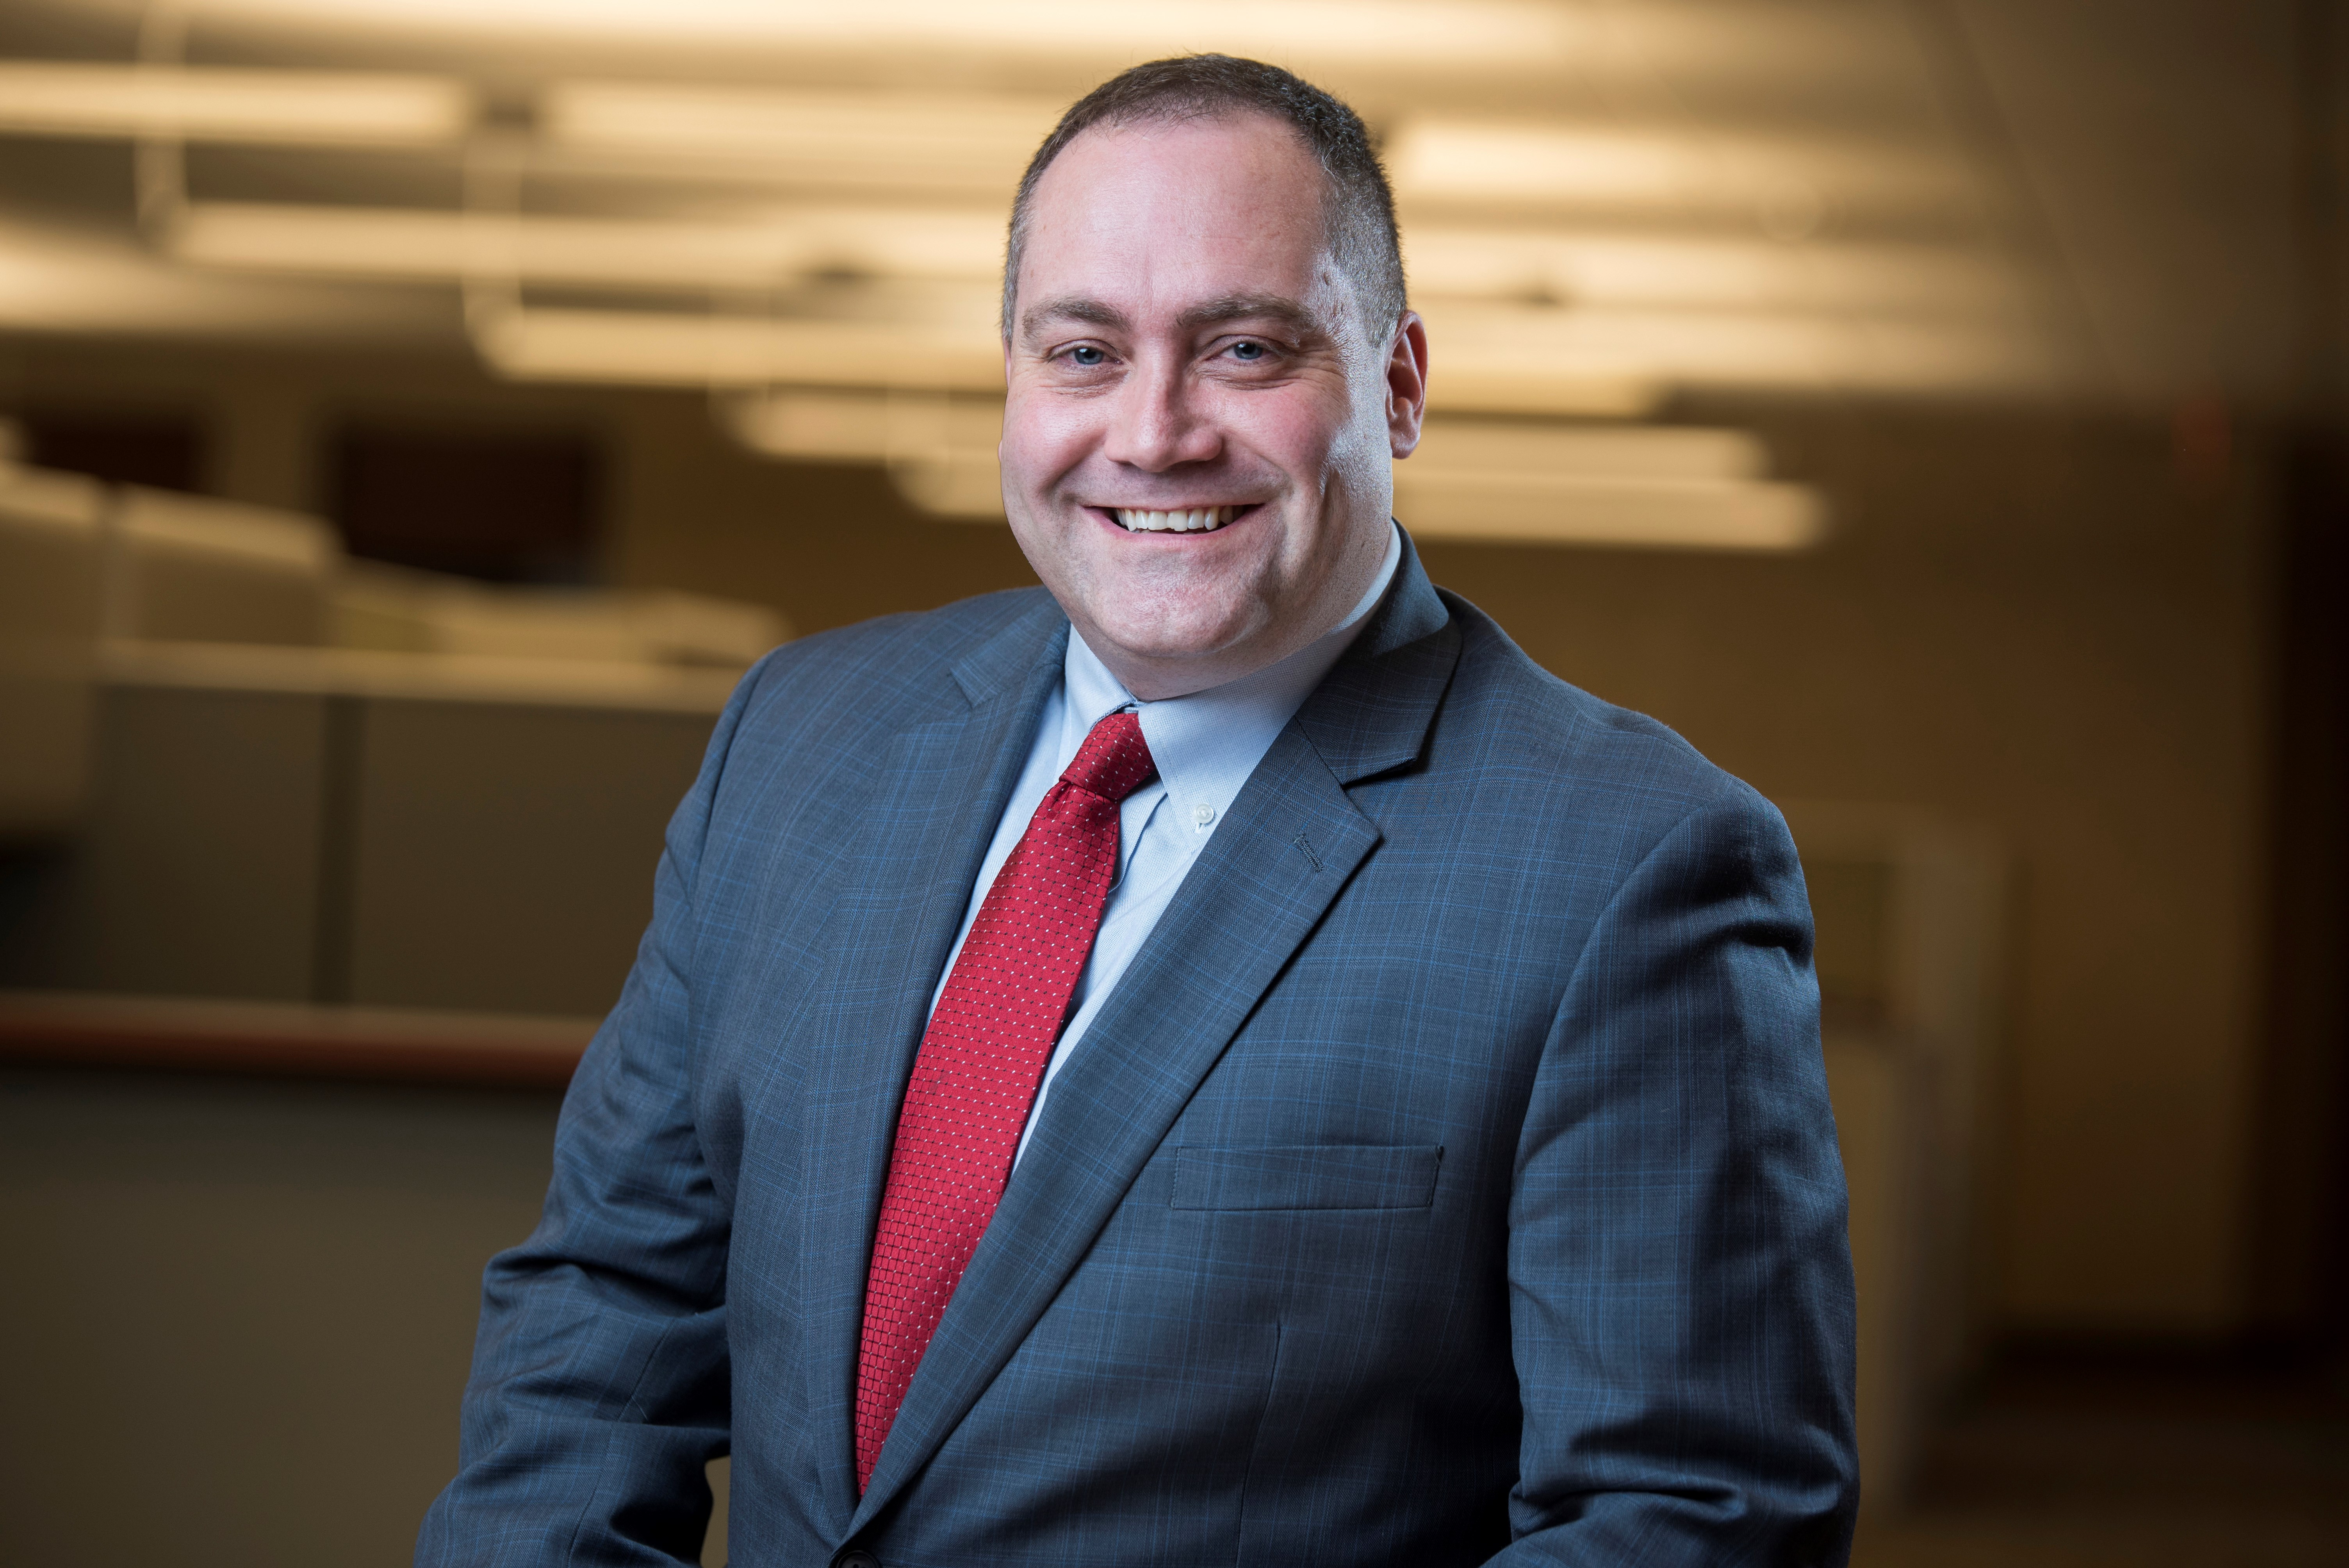 Brenden Healy CPA Headshot for Whittlesey